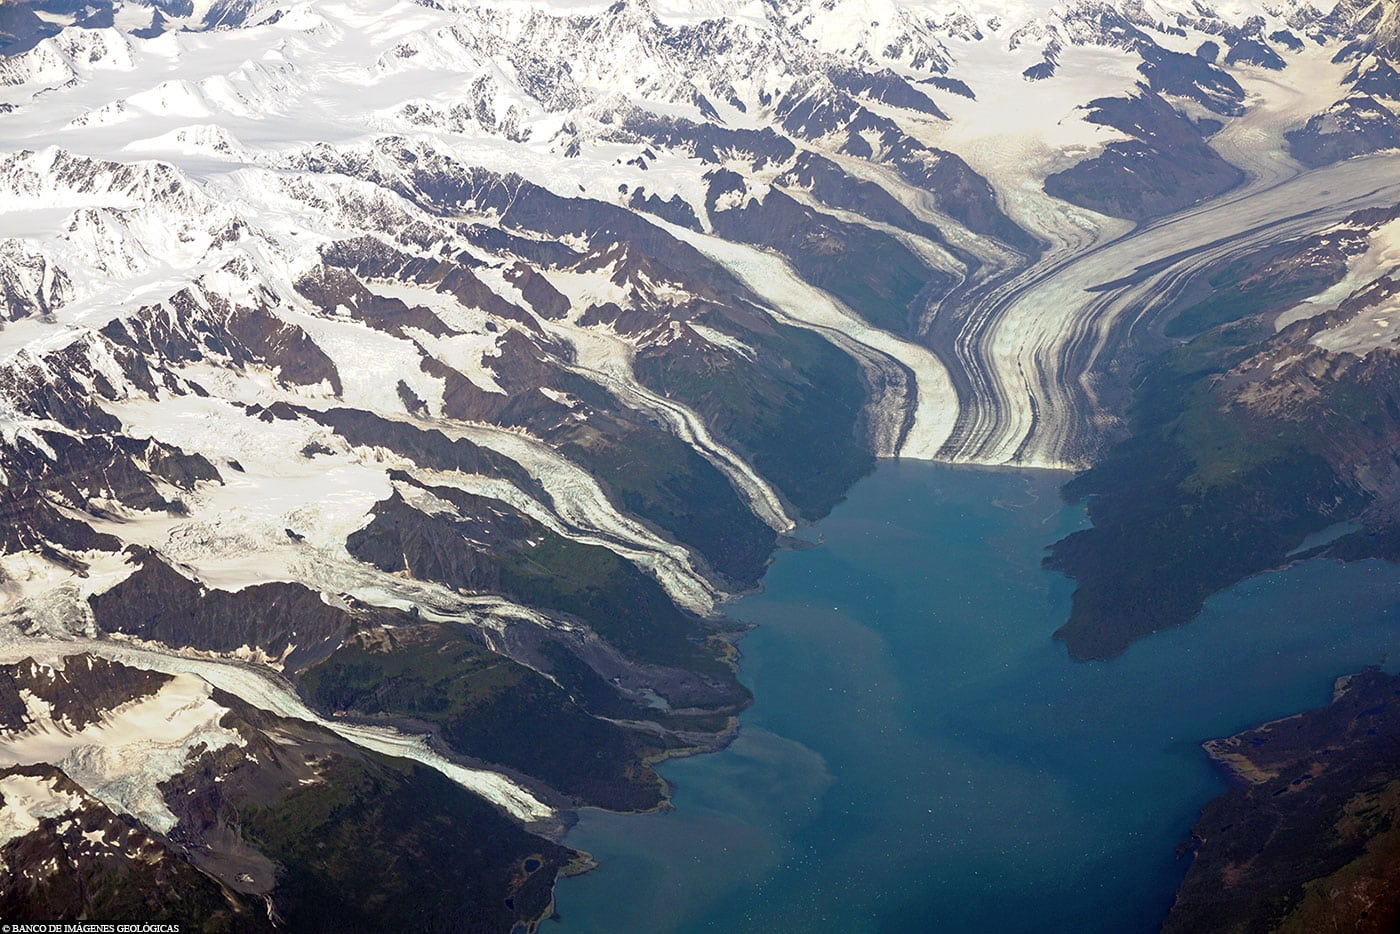 Alaska, College Fjord, Aerial Photo, USA, TravelReport, Princess Cruises, Cruises